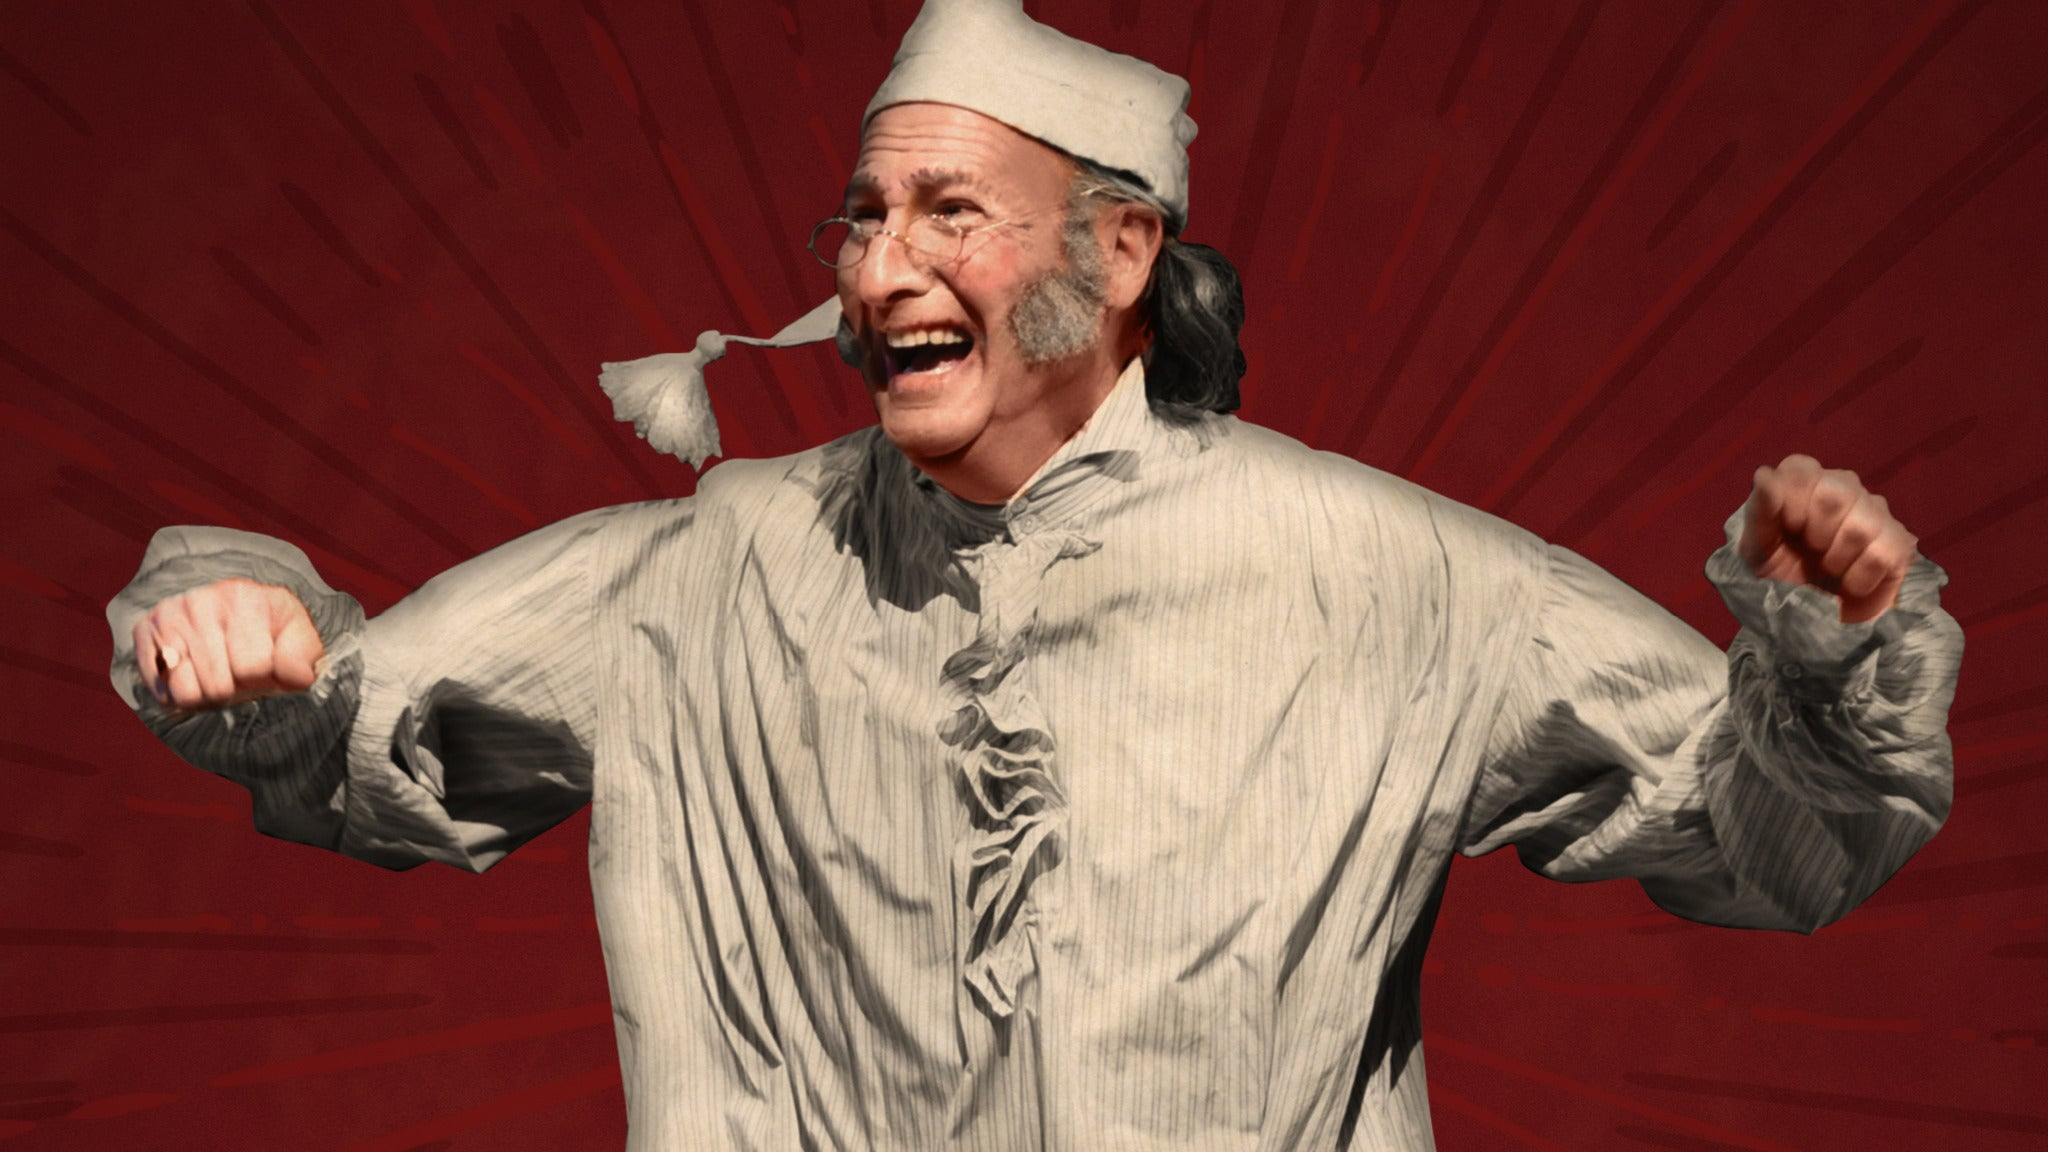 A Christmas Carol at Cobb Energy Performing Arts Centre